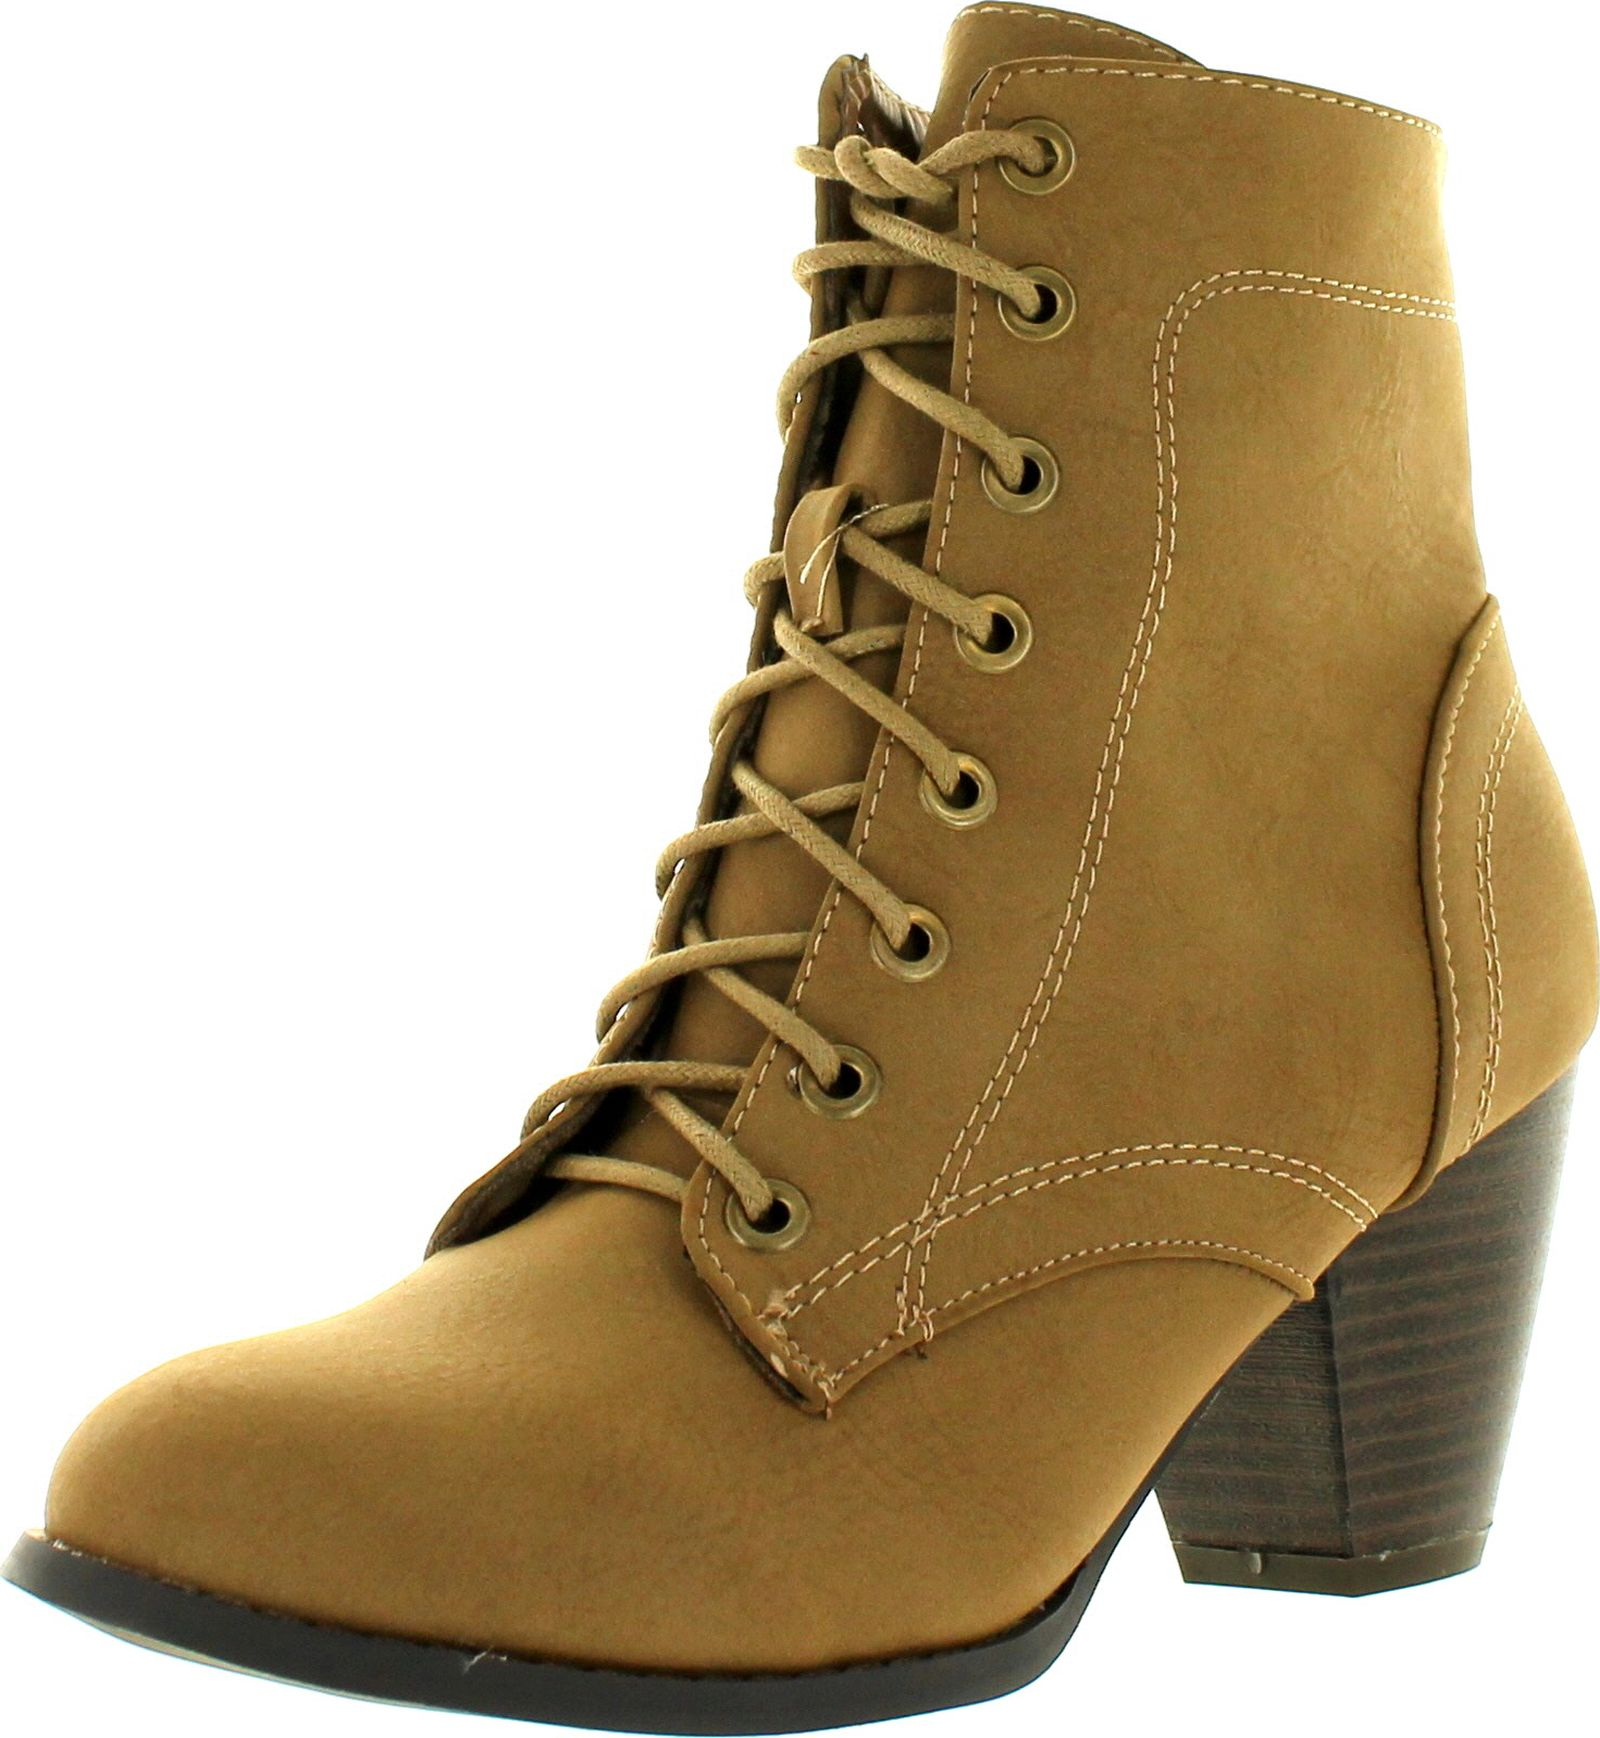 Ankle Boots with Height [The 50 Arrows Fall]